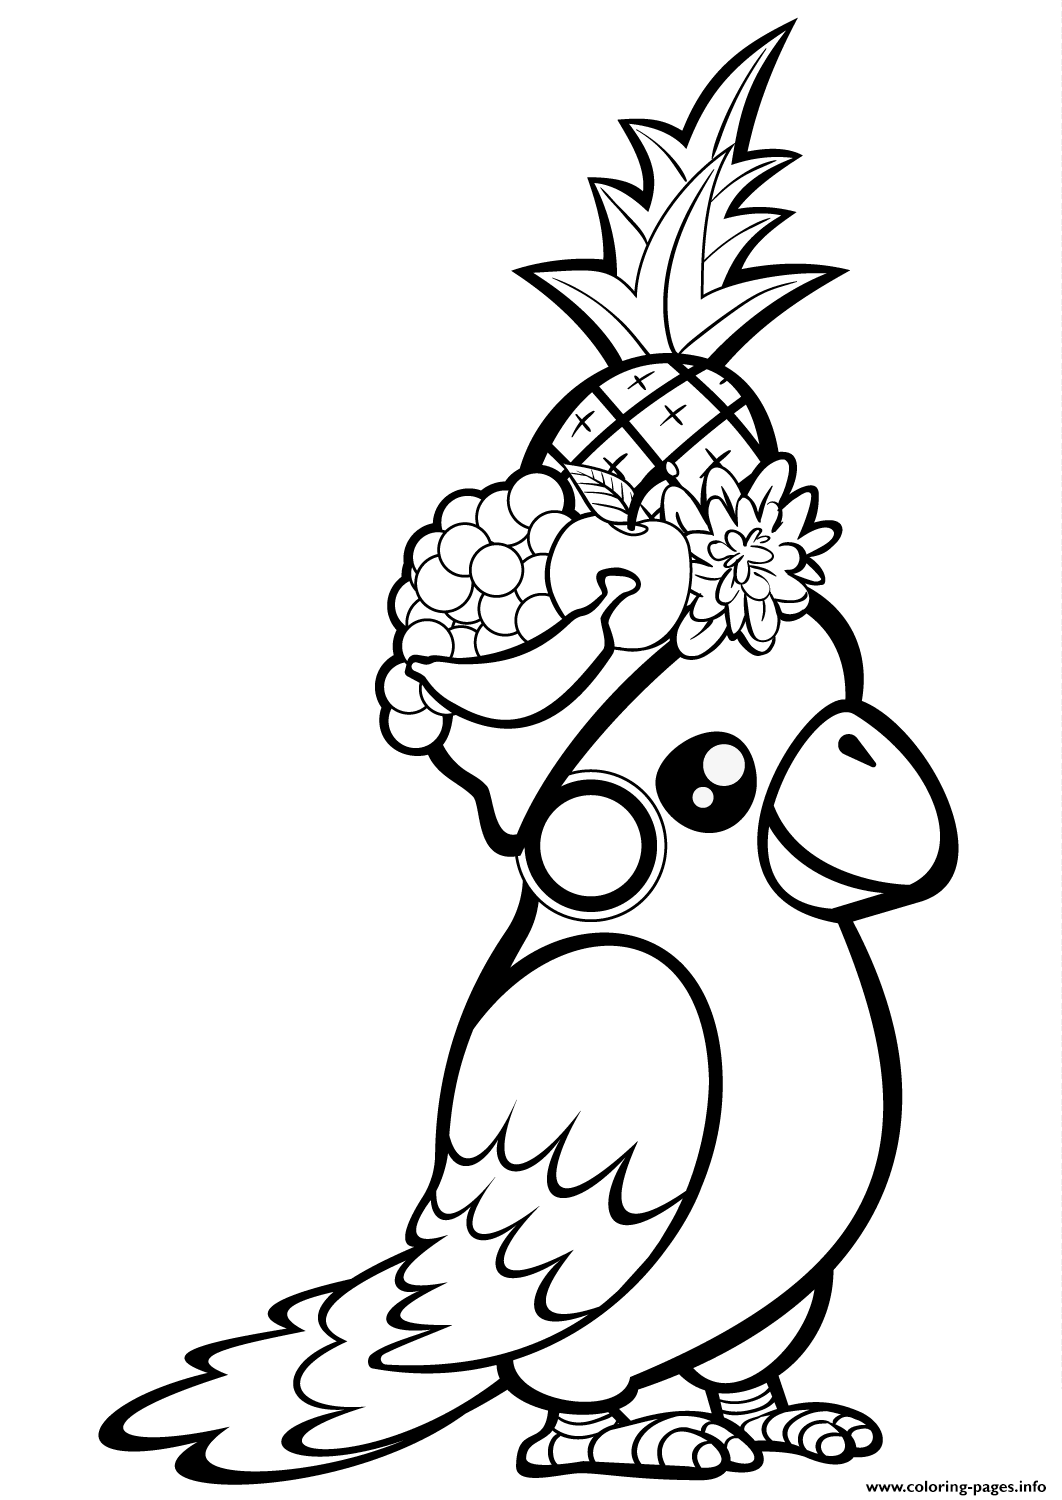 parrot pictures to print cute animal coloring pages best coloring pages for kids print pictures parrot to